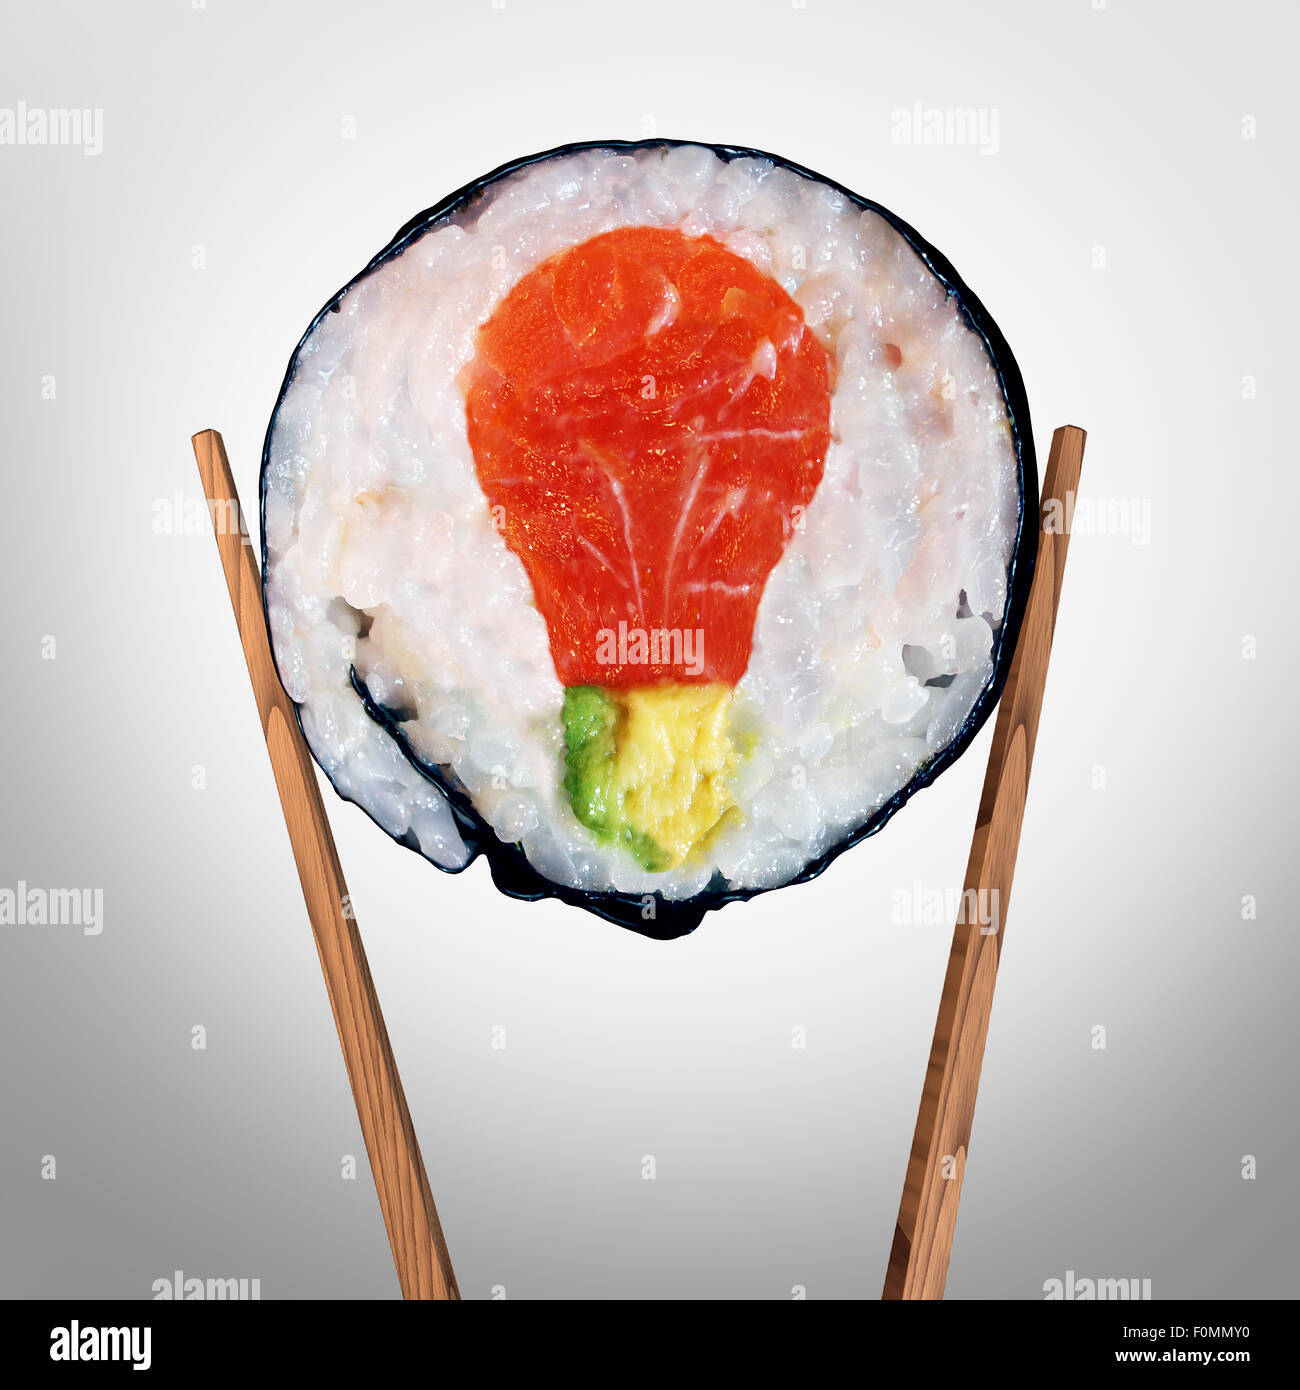 Sushi idea and Japanese food concept as a sushi roll with raw salmon and avocado shaped as a light bulb representing - Stock Image